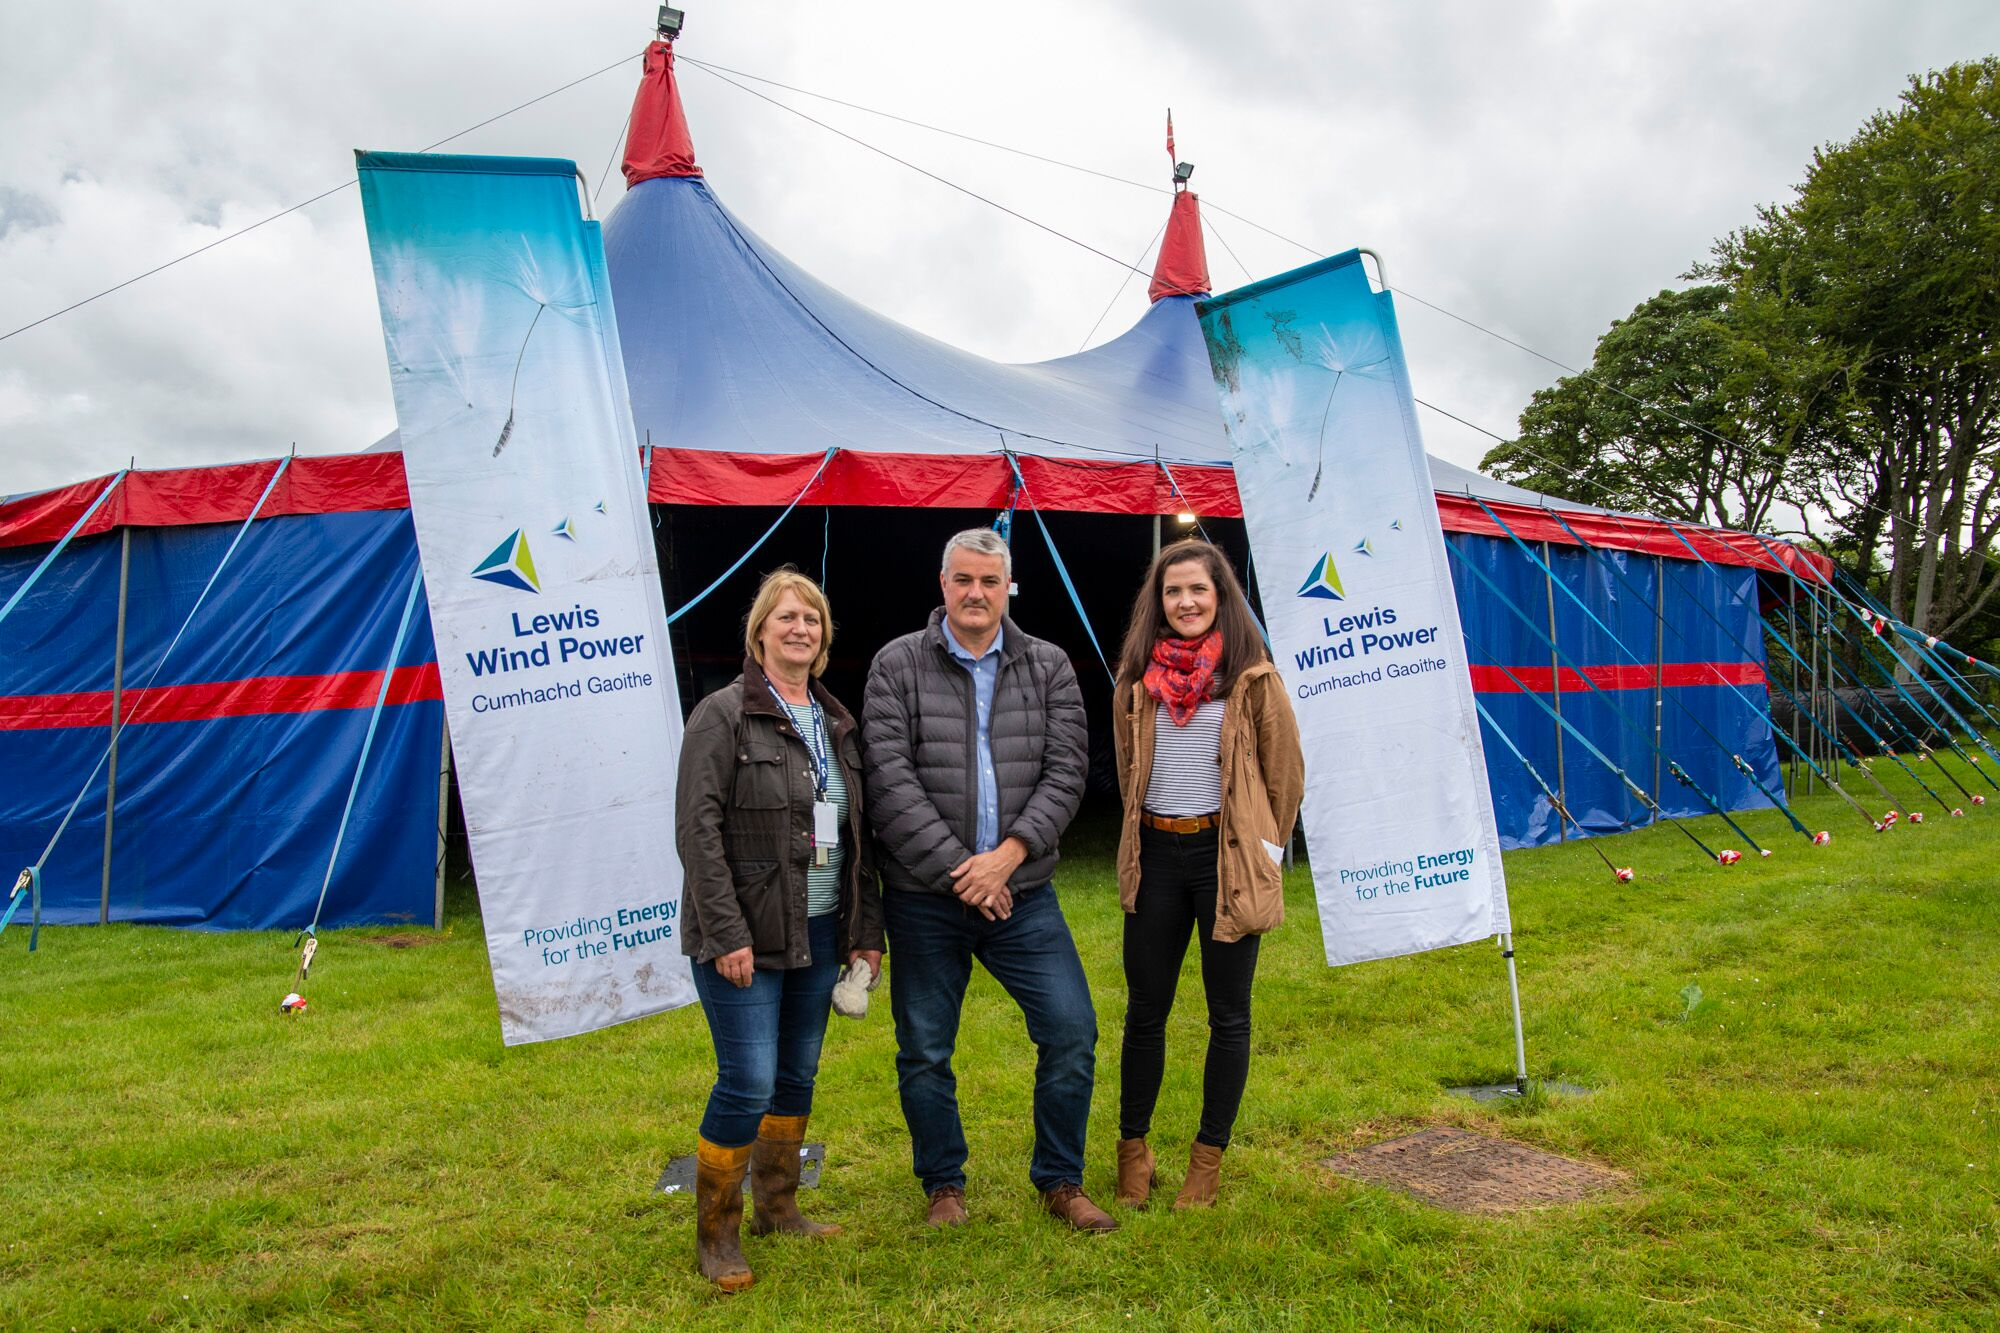 (left to right). Festival director Caroline Maclennan with Darren Cuming and Kerry MacPhee from Lewis Wind Power